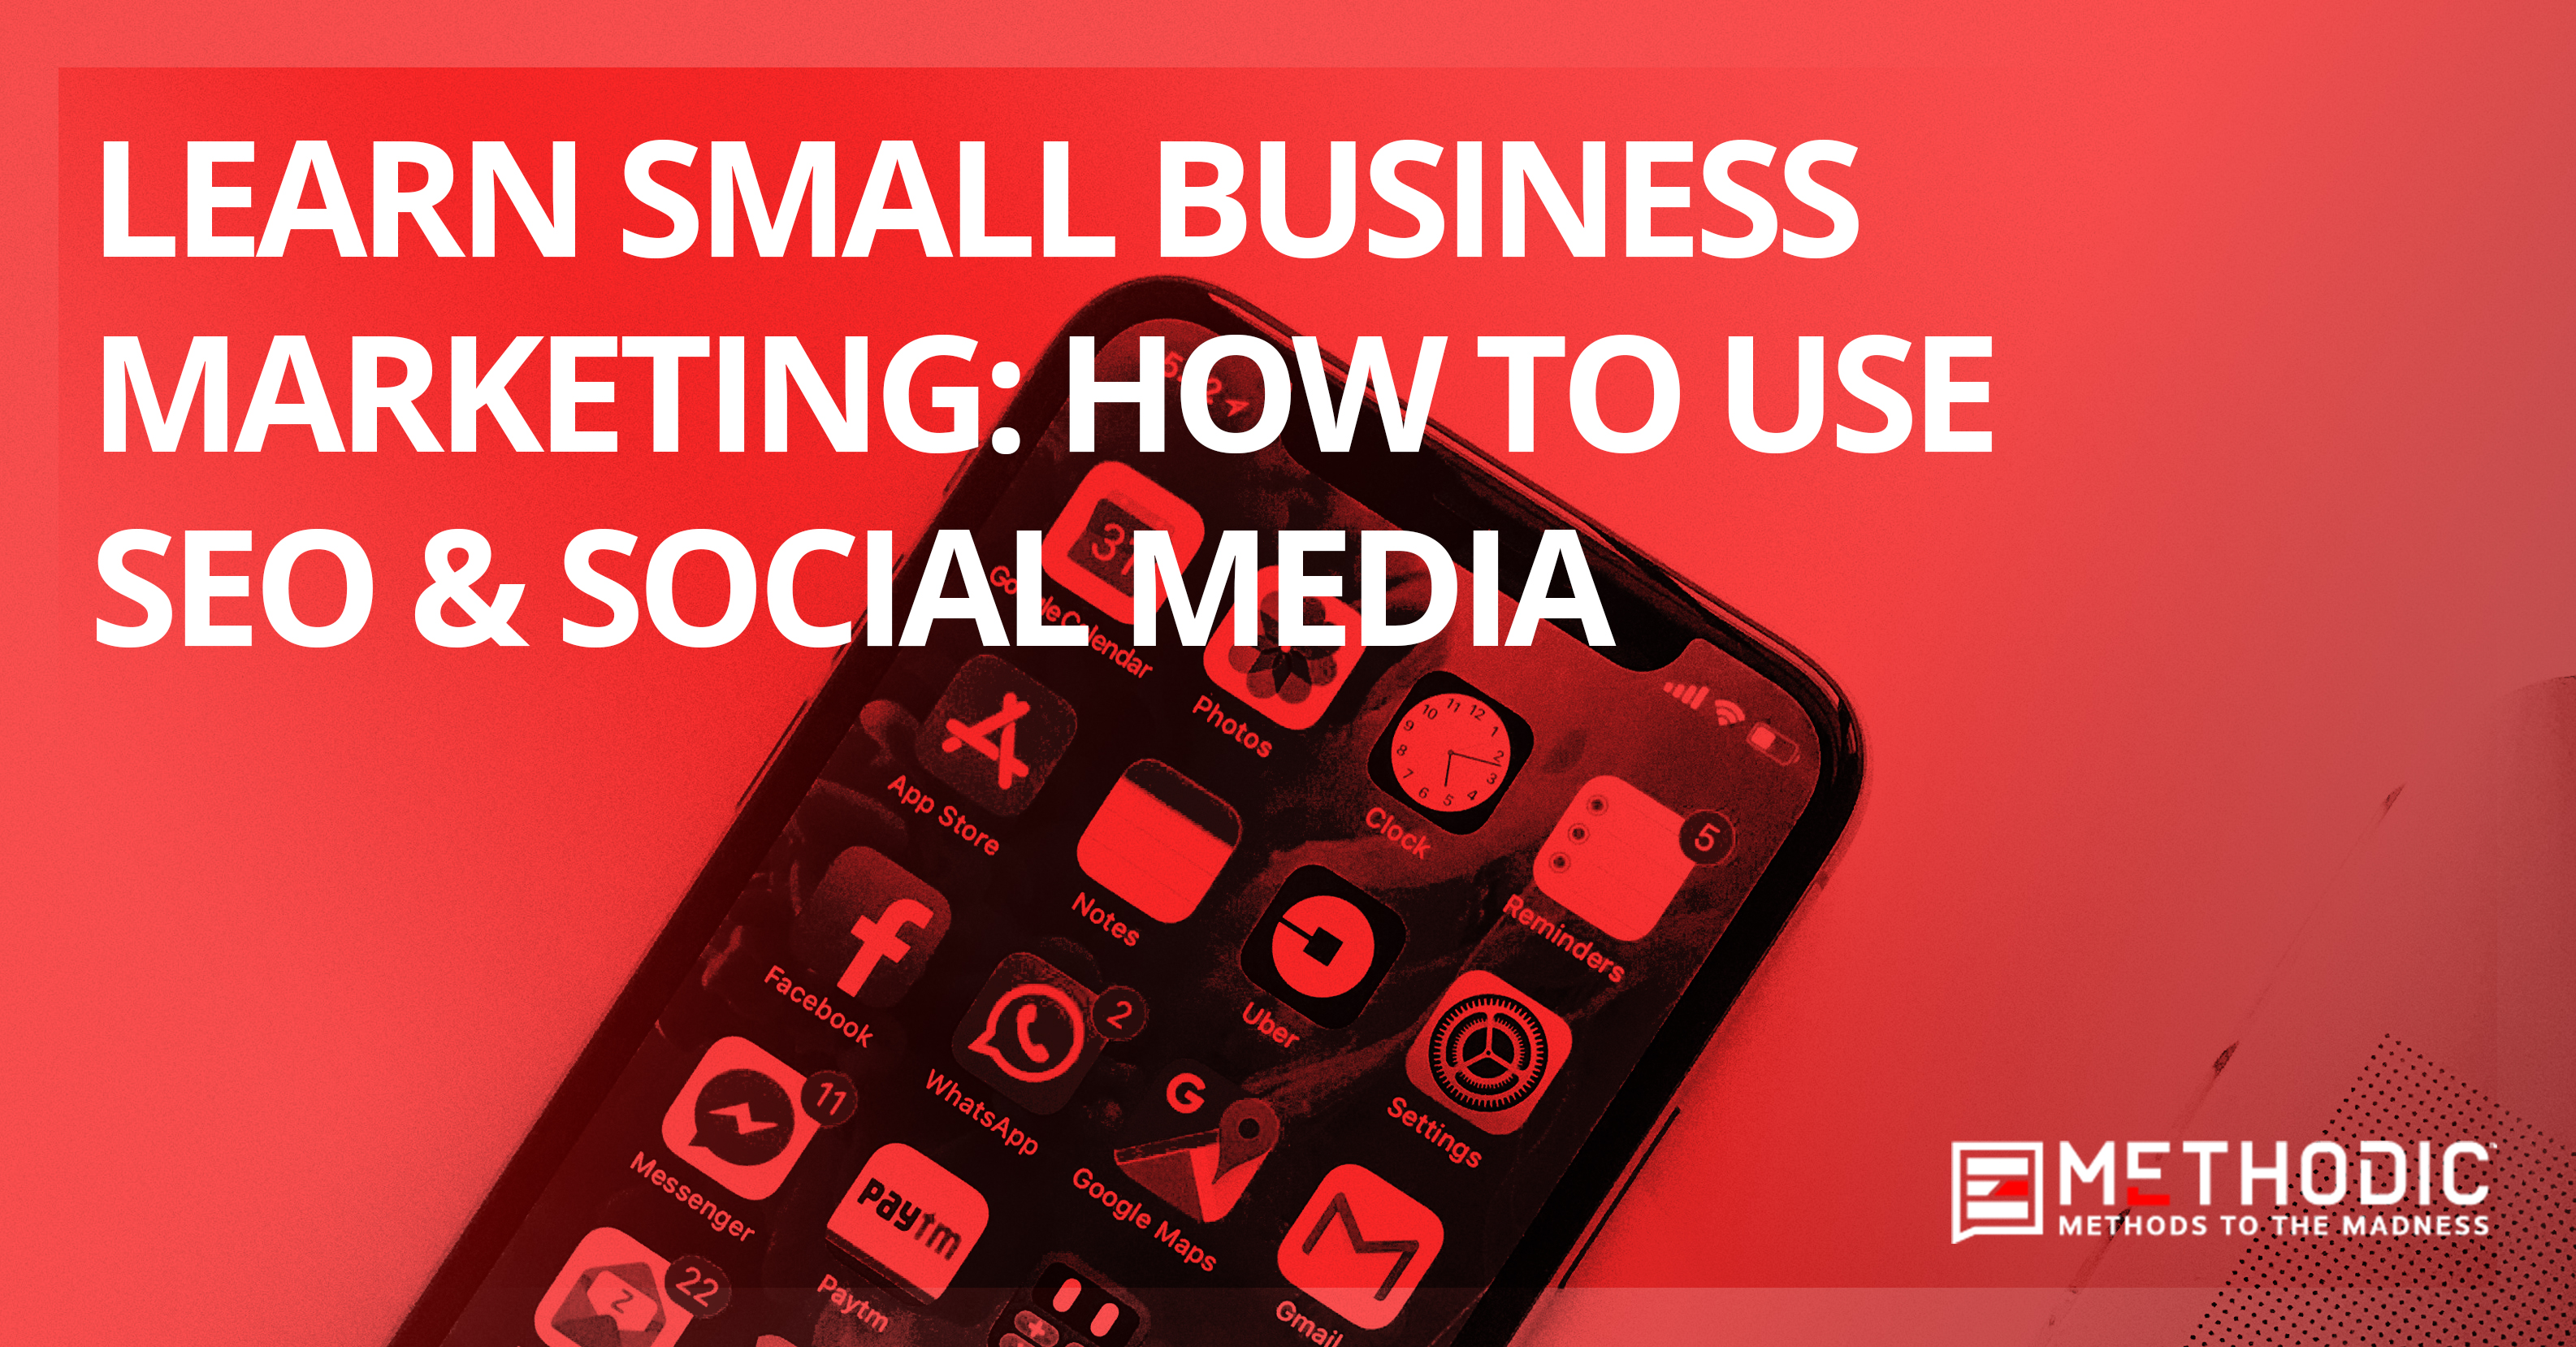 Learn Small Business Marketing: How to Use SEO & Social Media